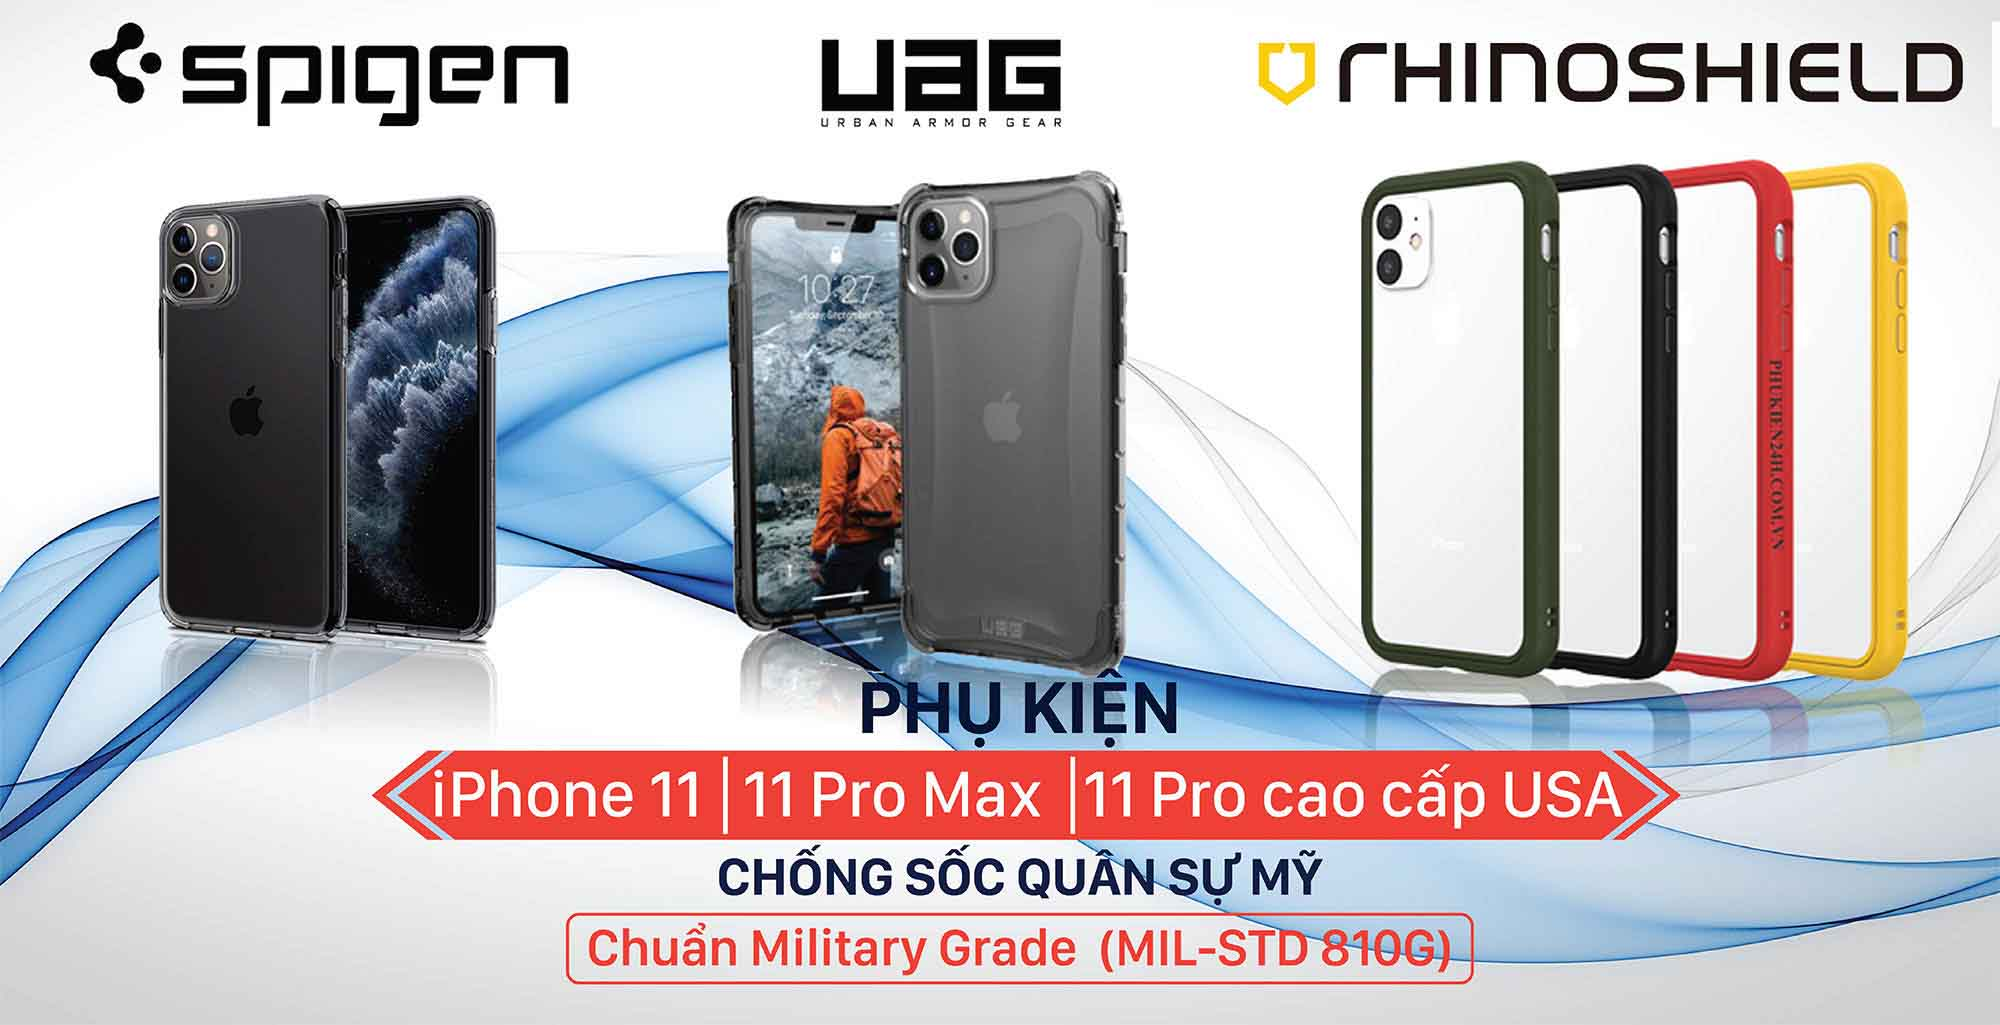 phụ kiện iphone 11 Pro max